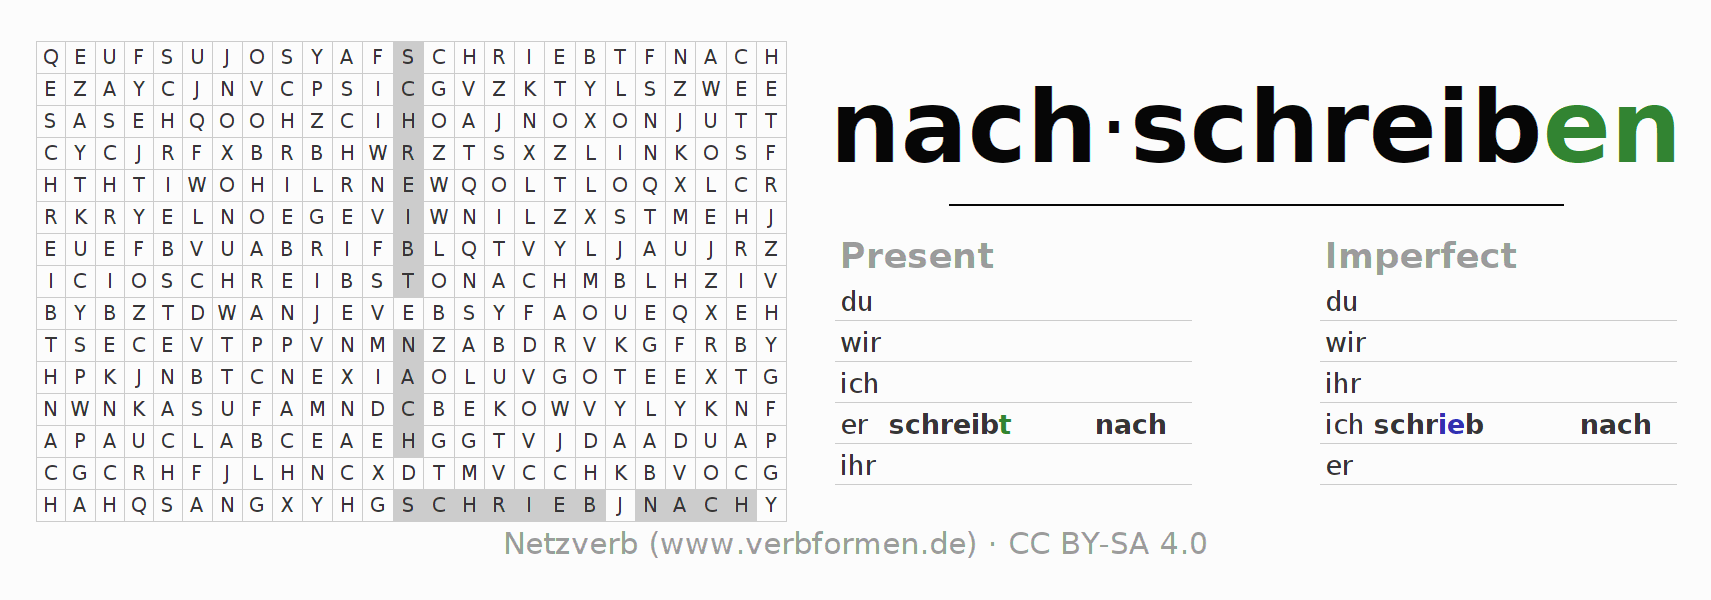 Word search puzzle for the conjugation of the verb nachschreiben